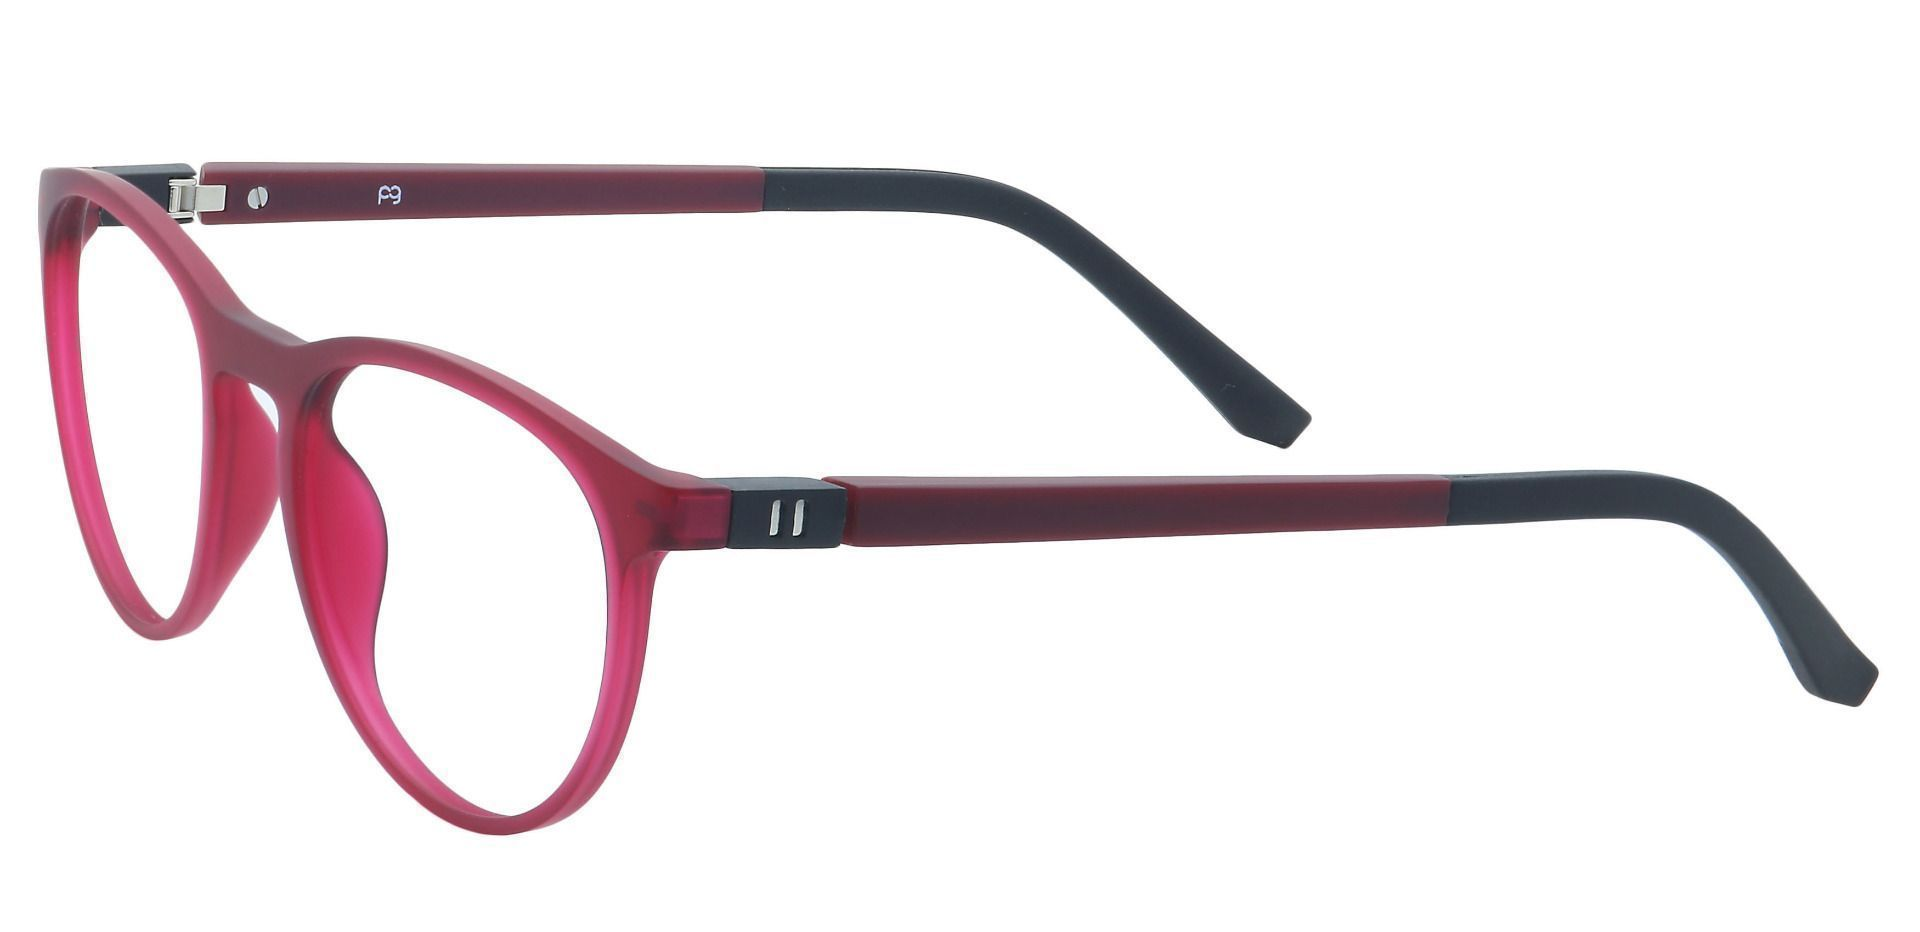 Heidi Round Reading Glasses - Matte Red